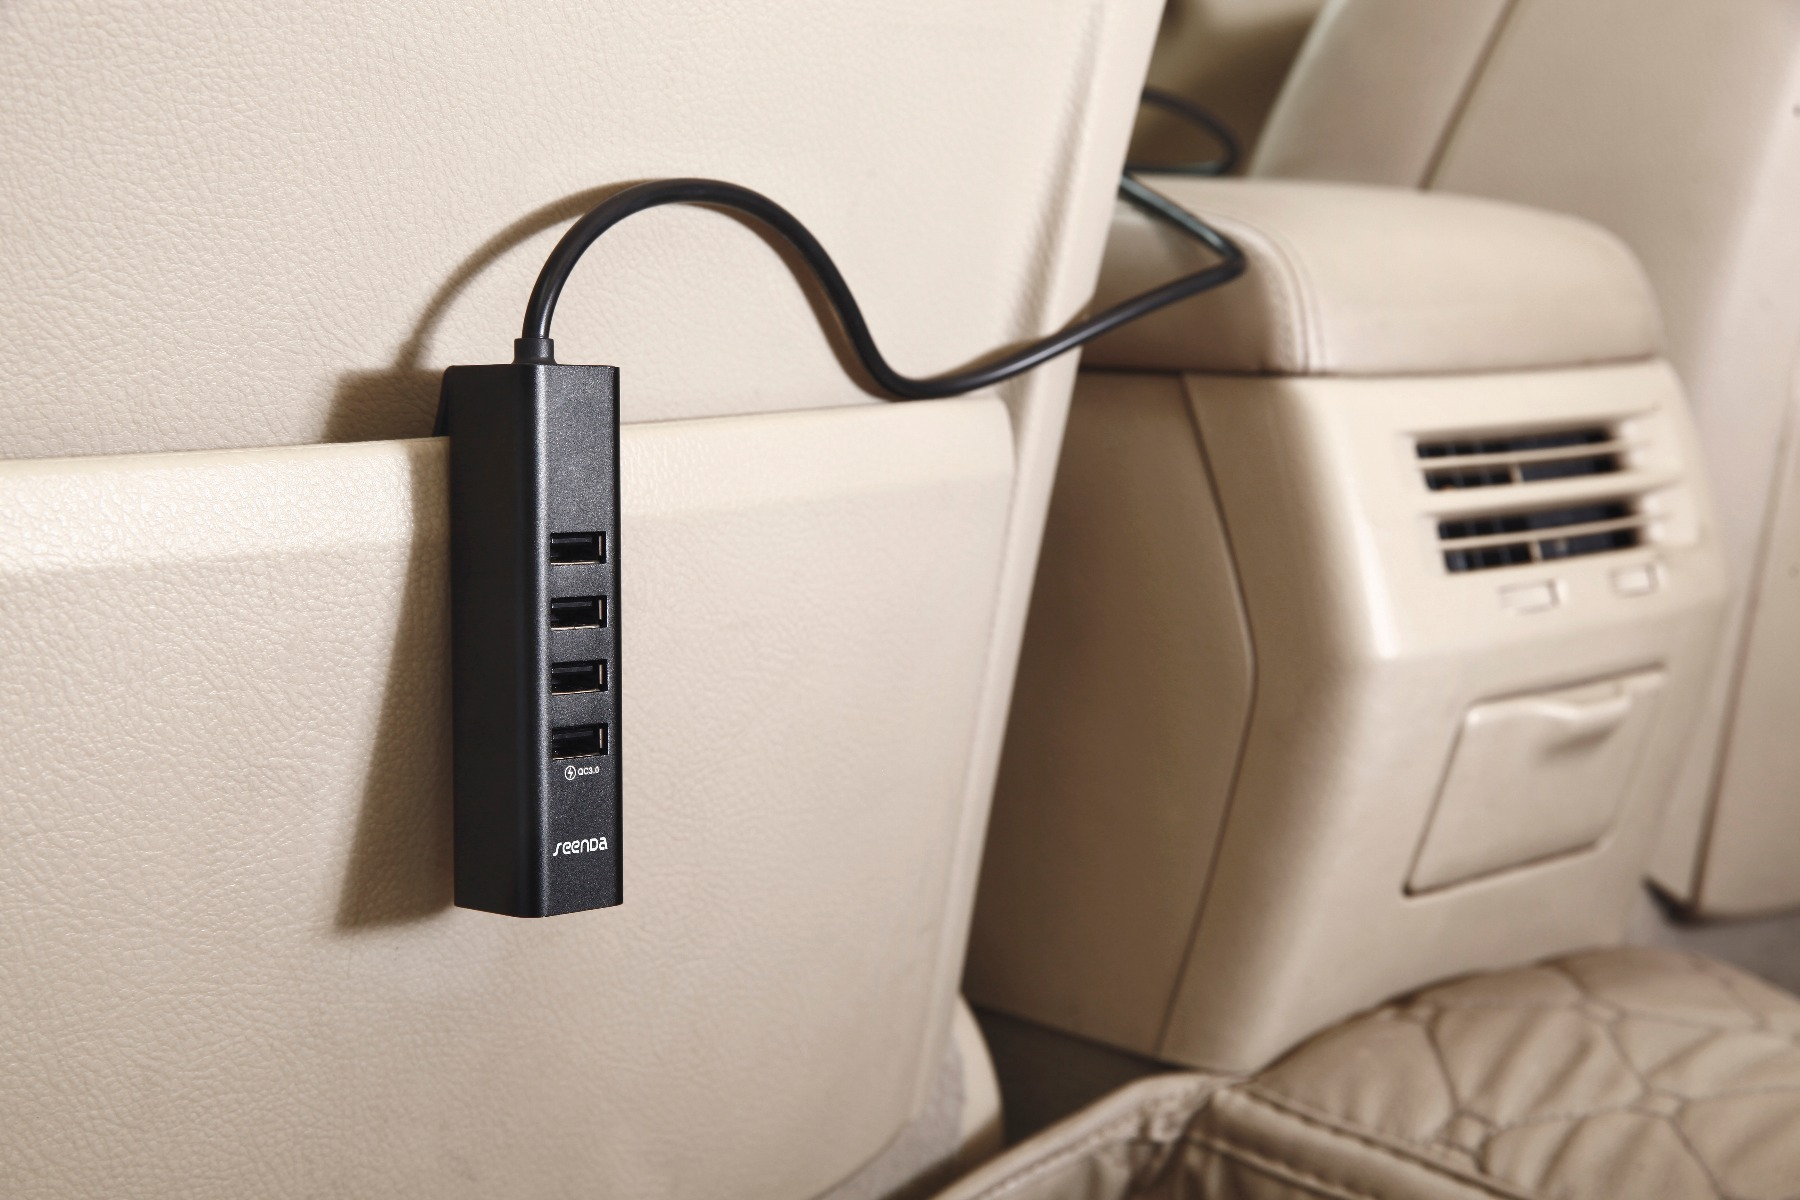 Seenda ICH-31 USB Car Charger with 6 Port